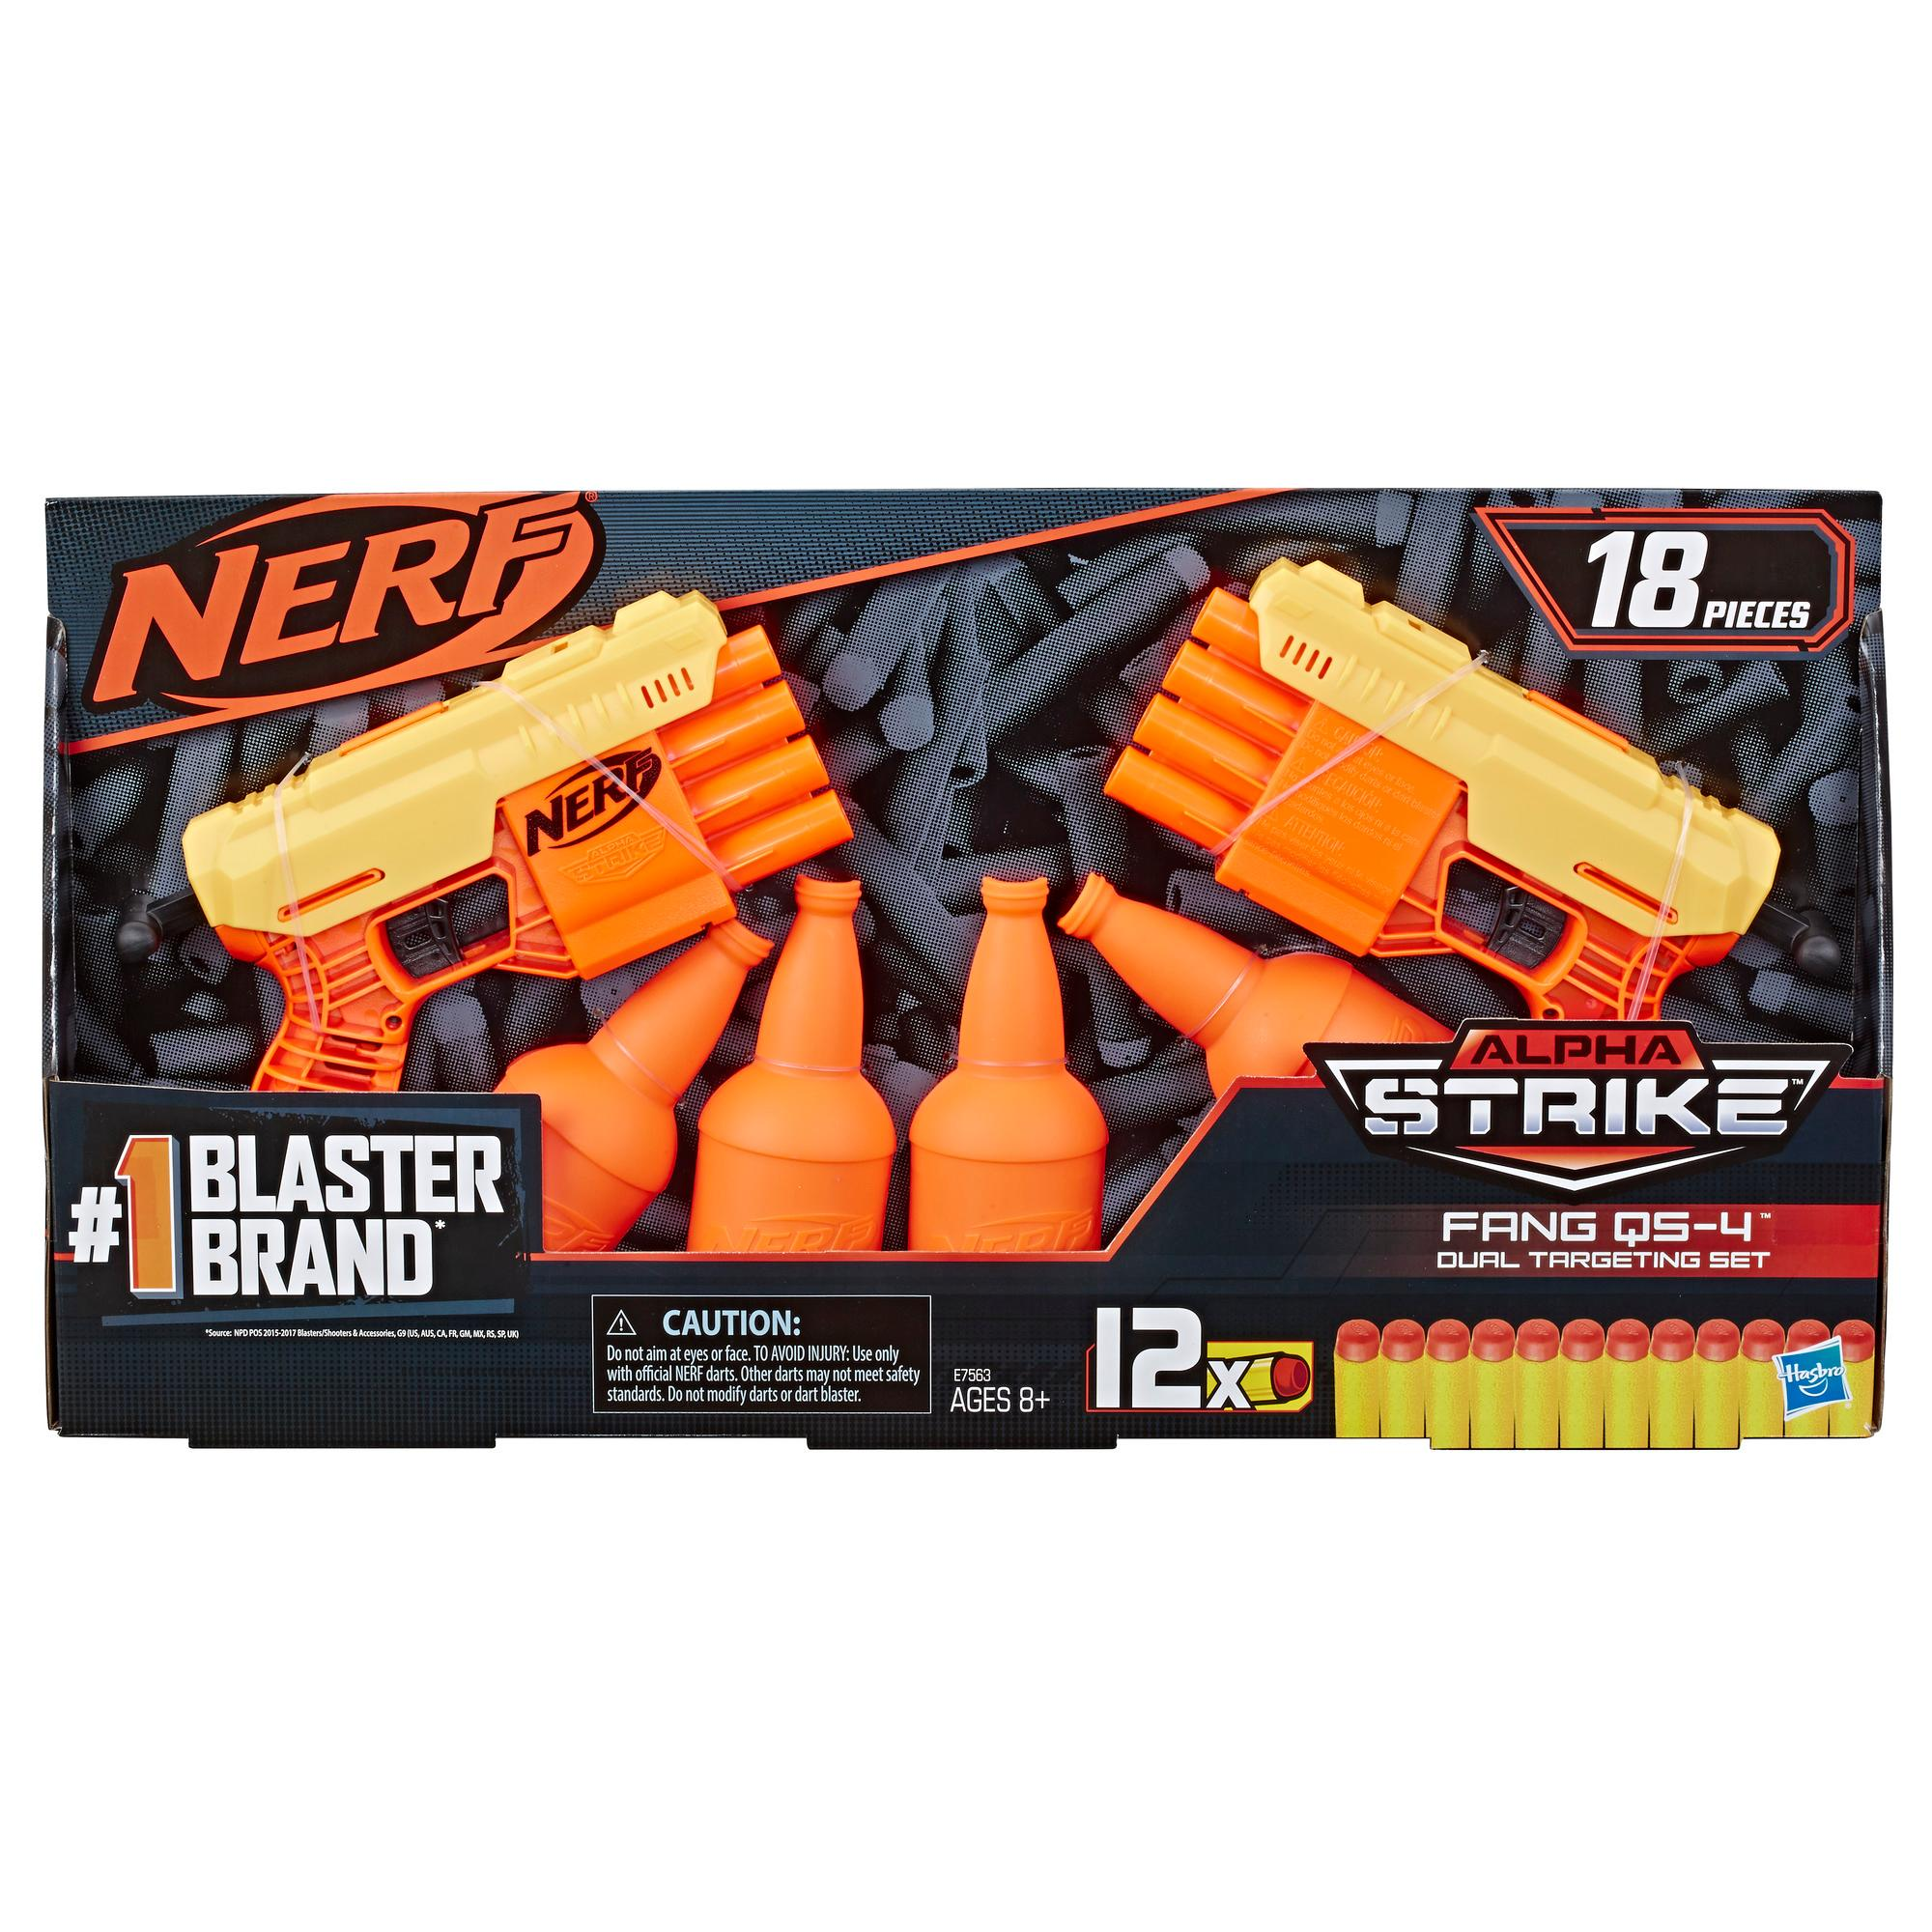 Fang QS-4 Set doble de puntería -- Set Nerf Alpha Strike de 18 piezas